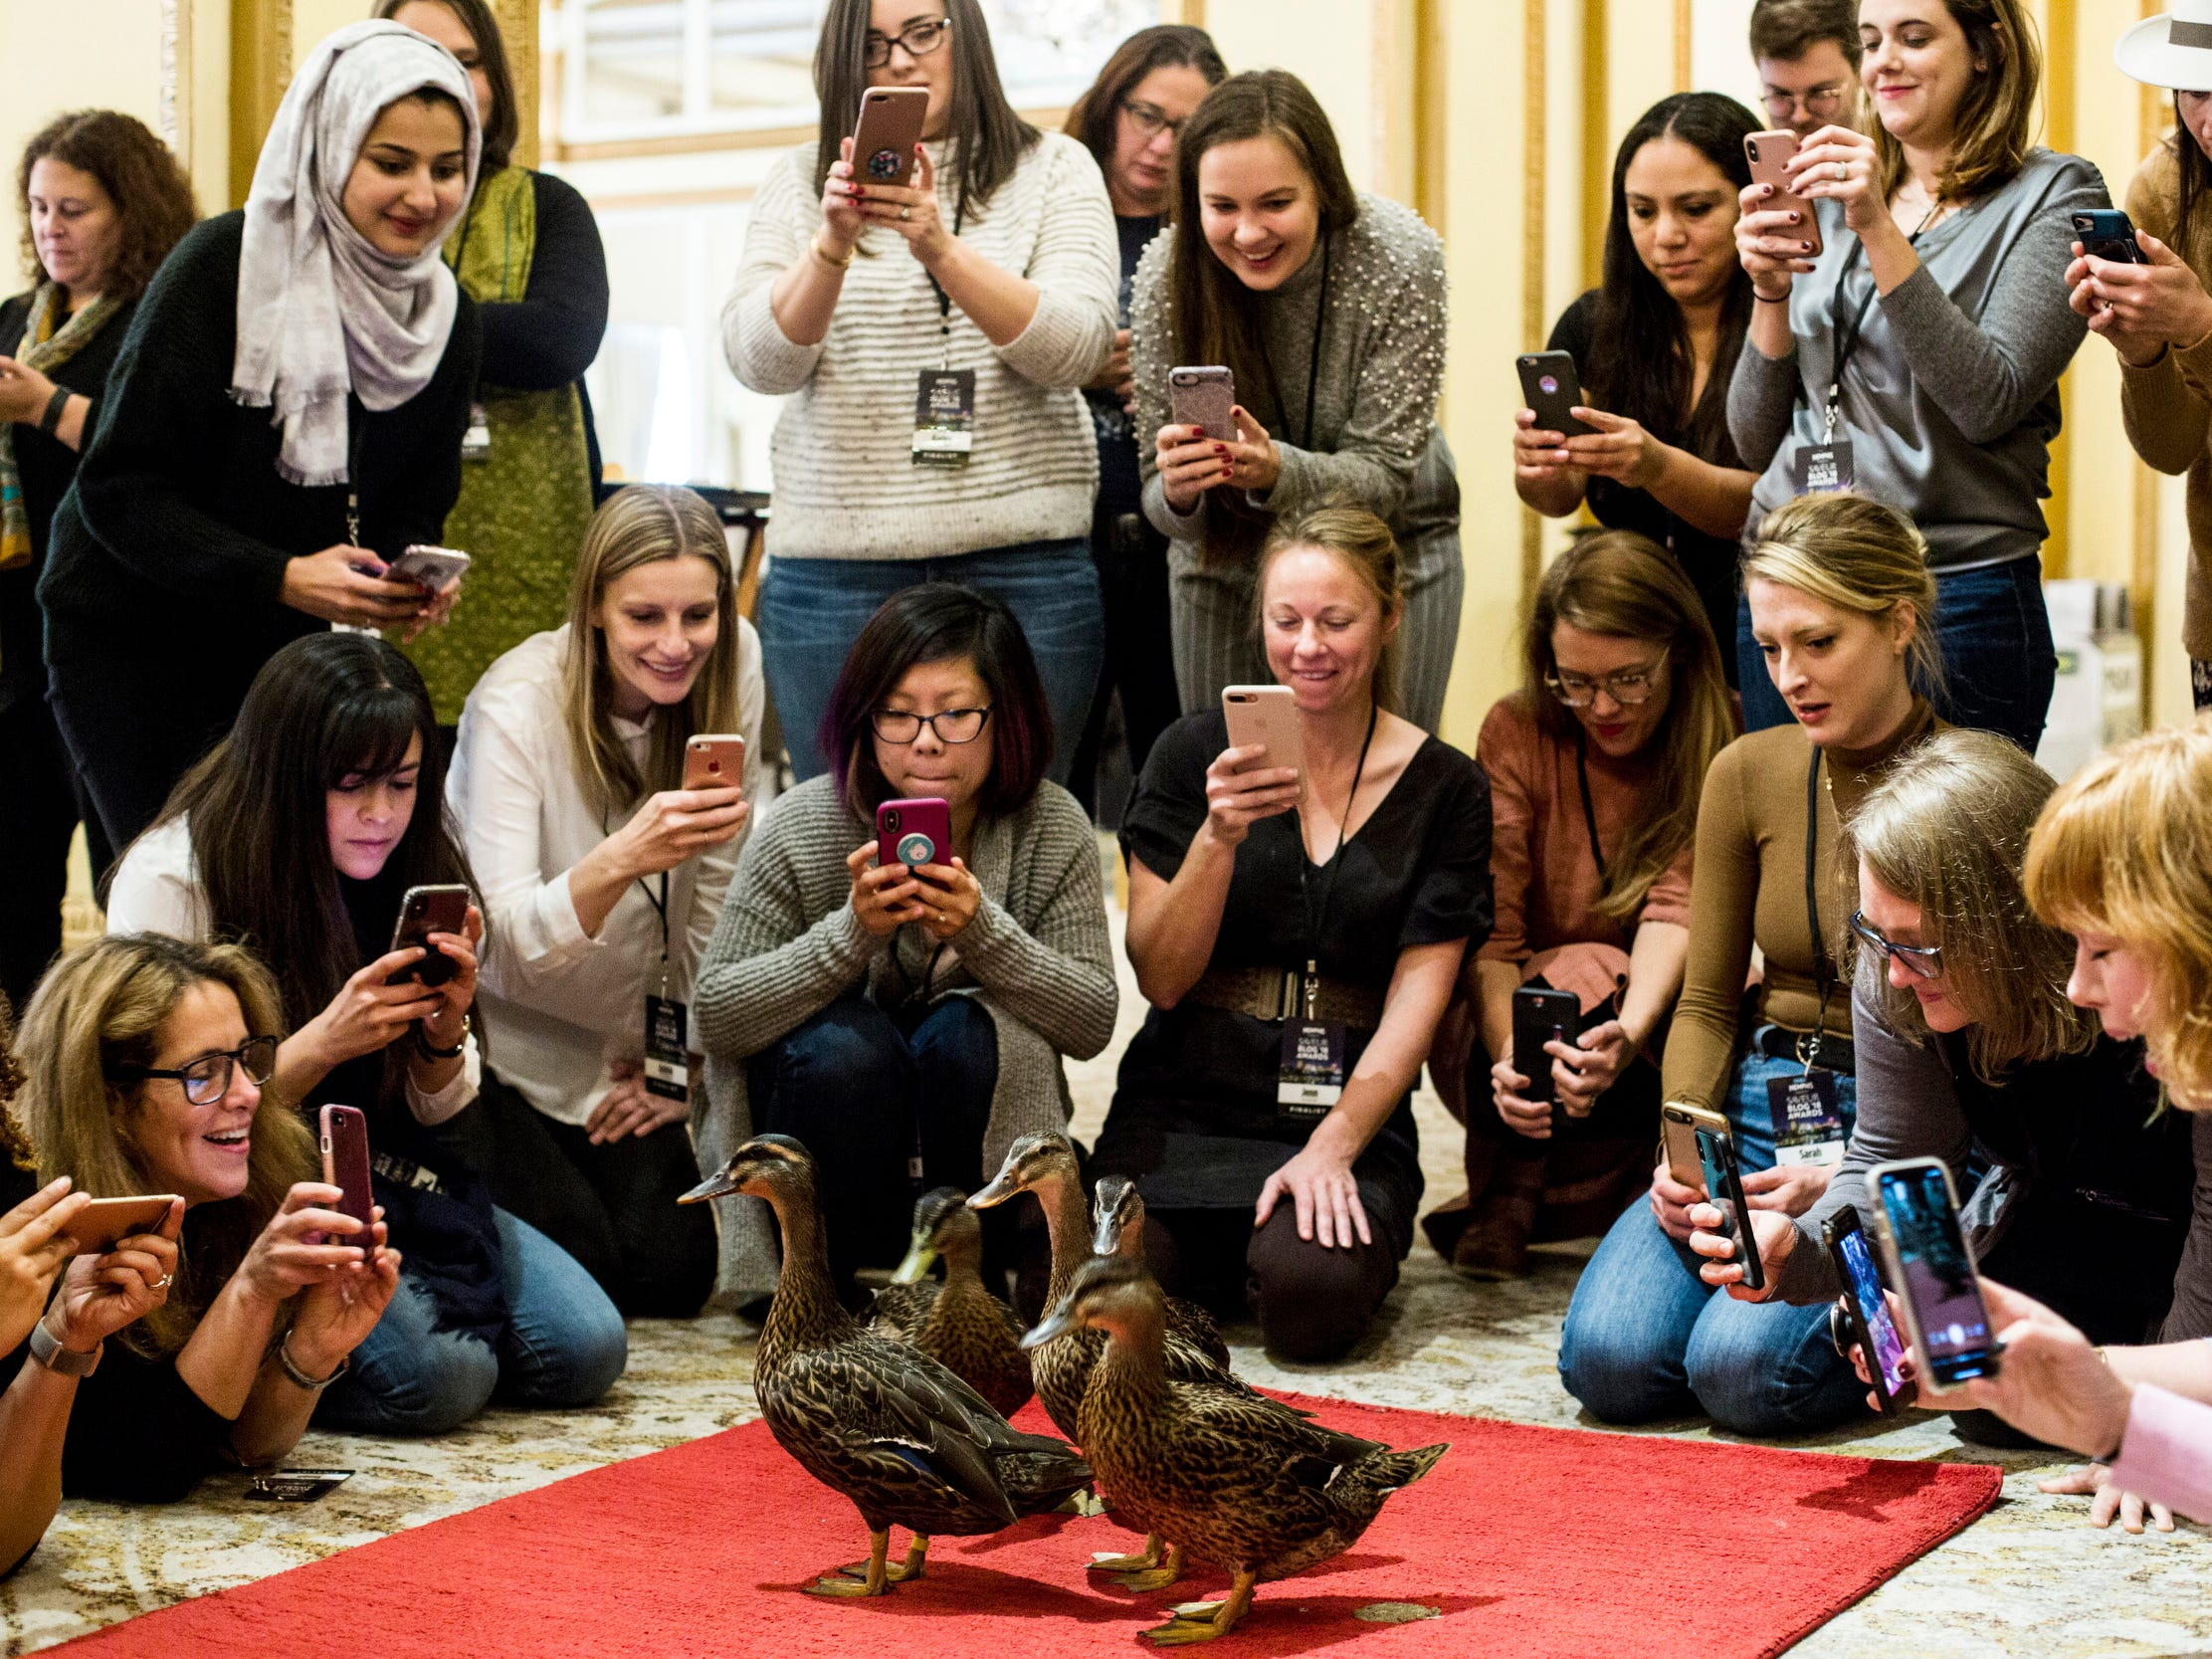 Saveur Blog Award finalists and guests gather around the red carpet during a private Peabody duck march inside of the Peabody Hotel on Nov. 11, 2018.